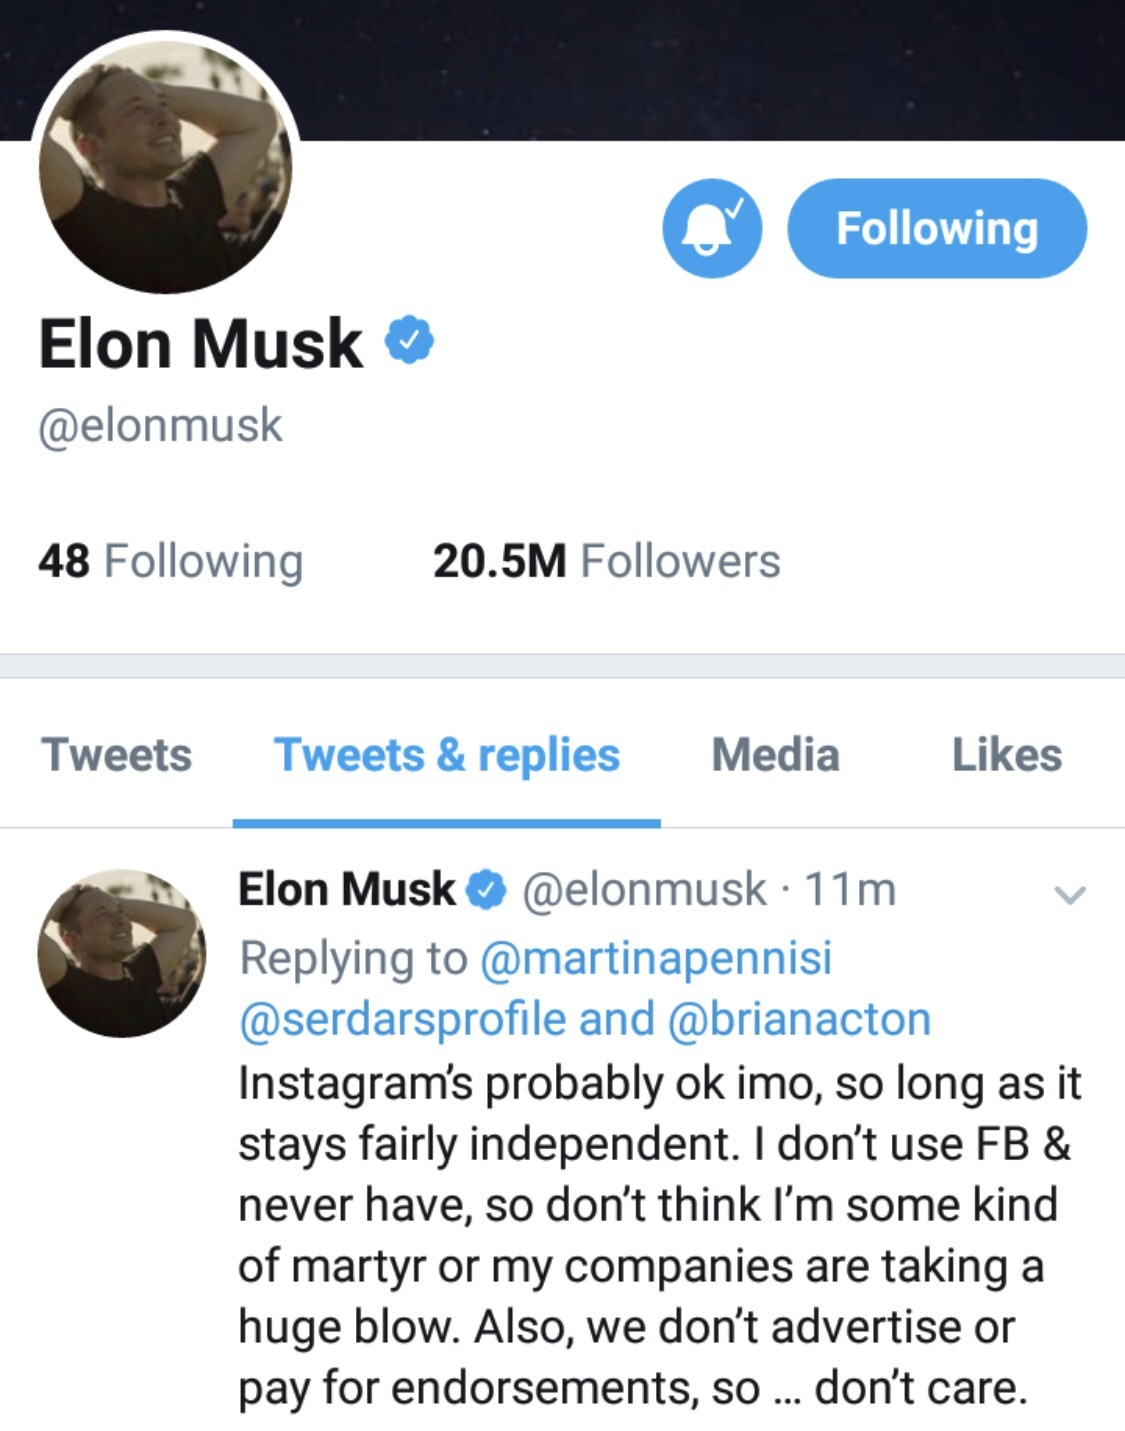 Why did Elon Musk delete his SpaceX Facebook page, and what